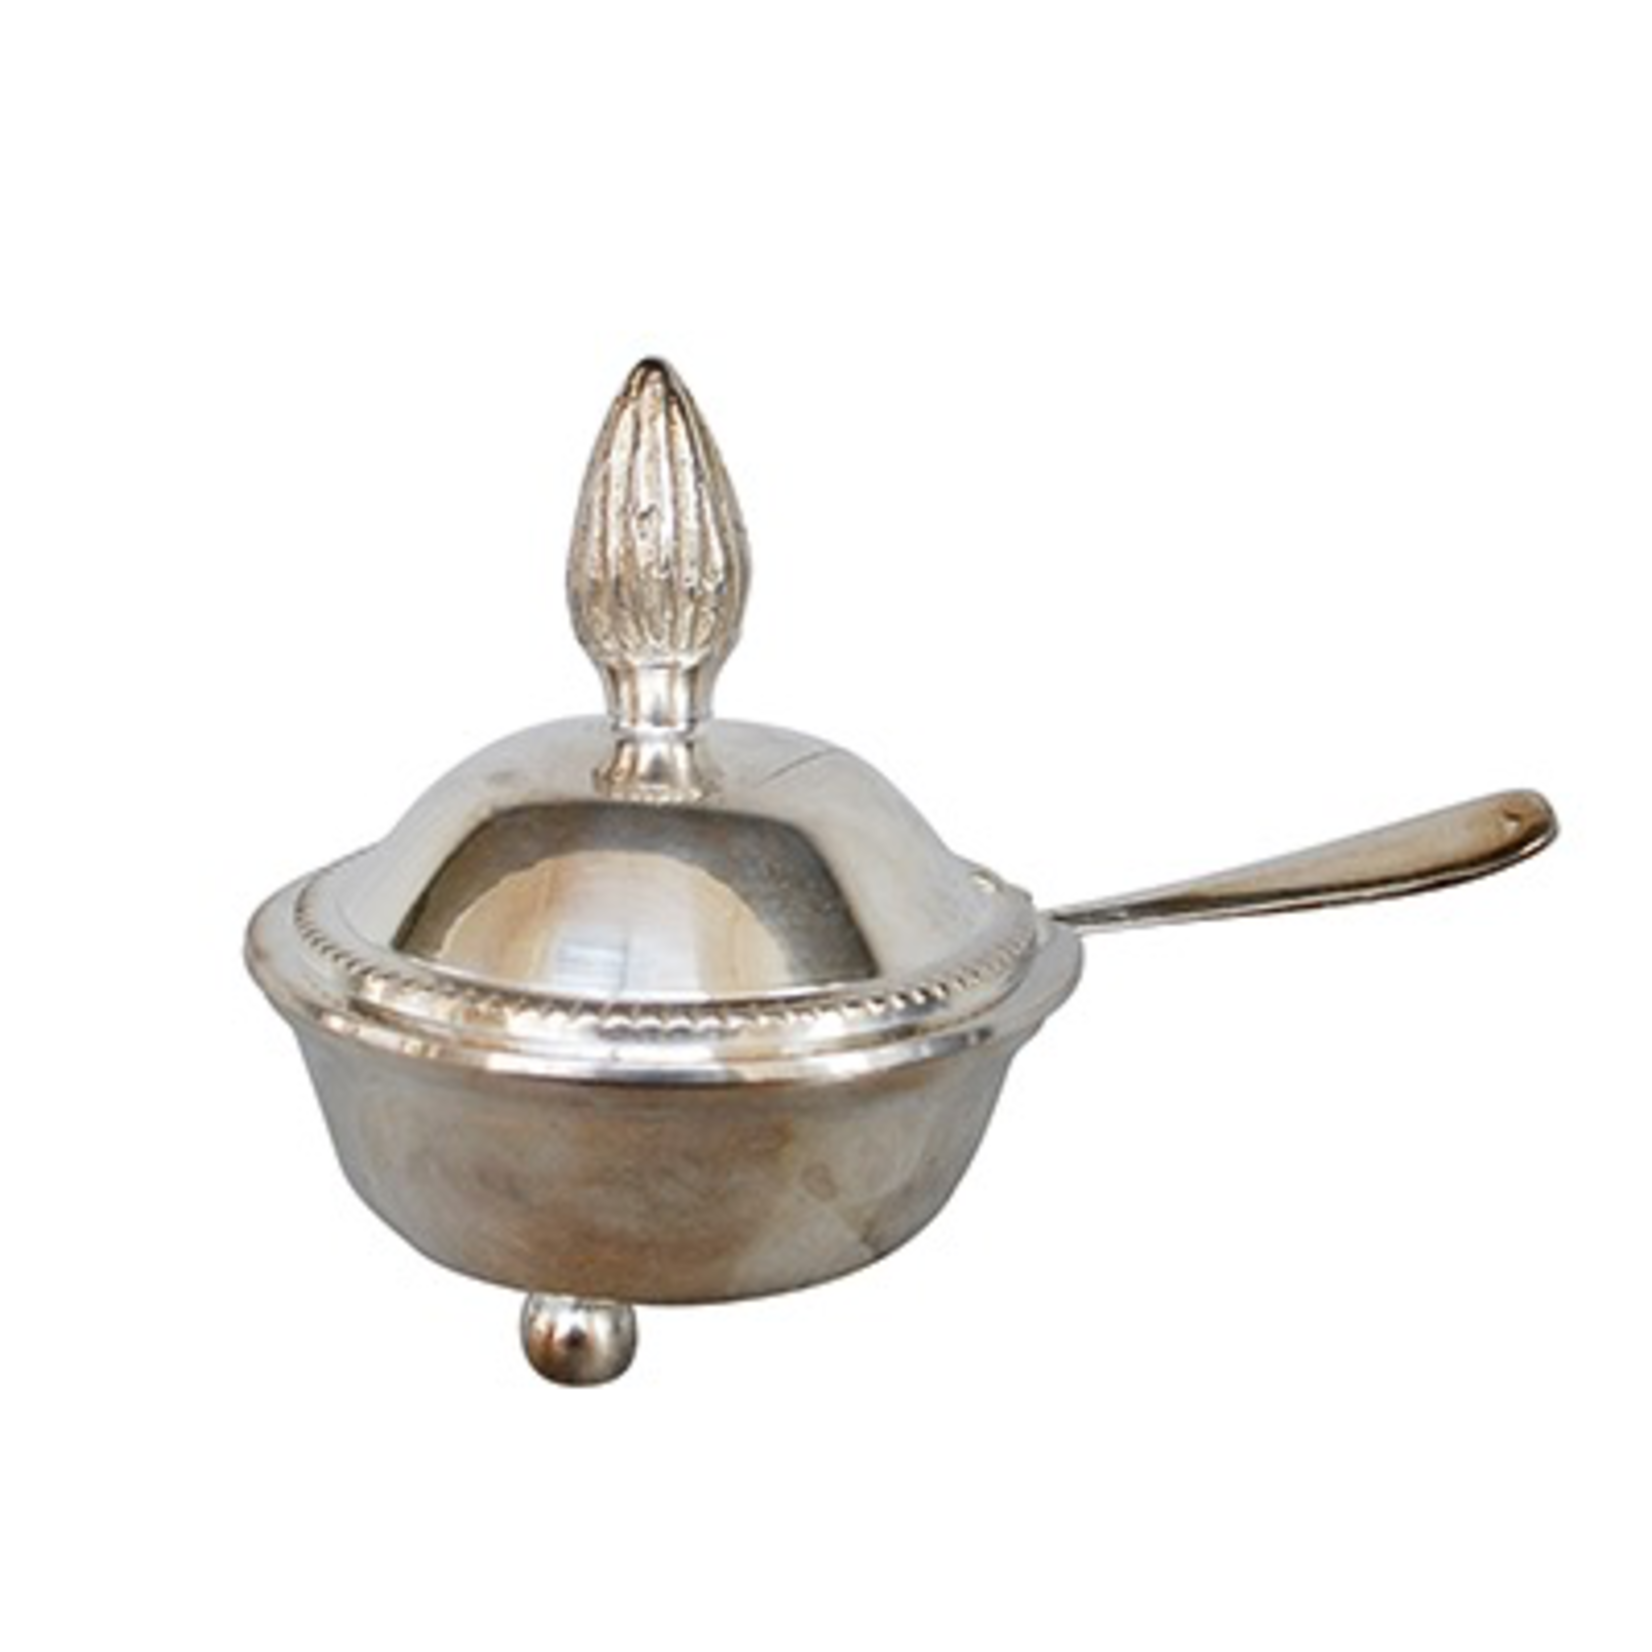 CHEHOMA JAM POT ANTIQUE SILVER WITH SPOON